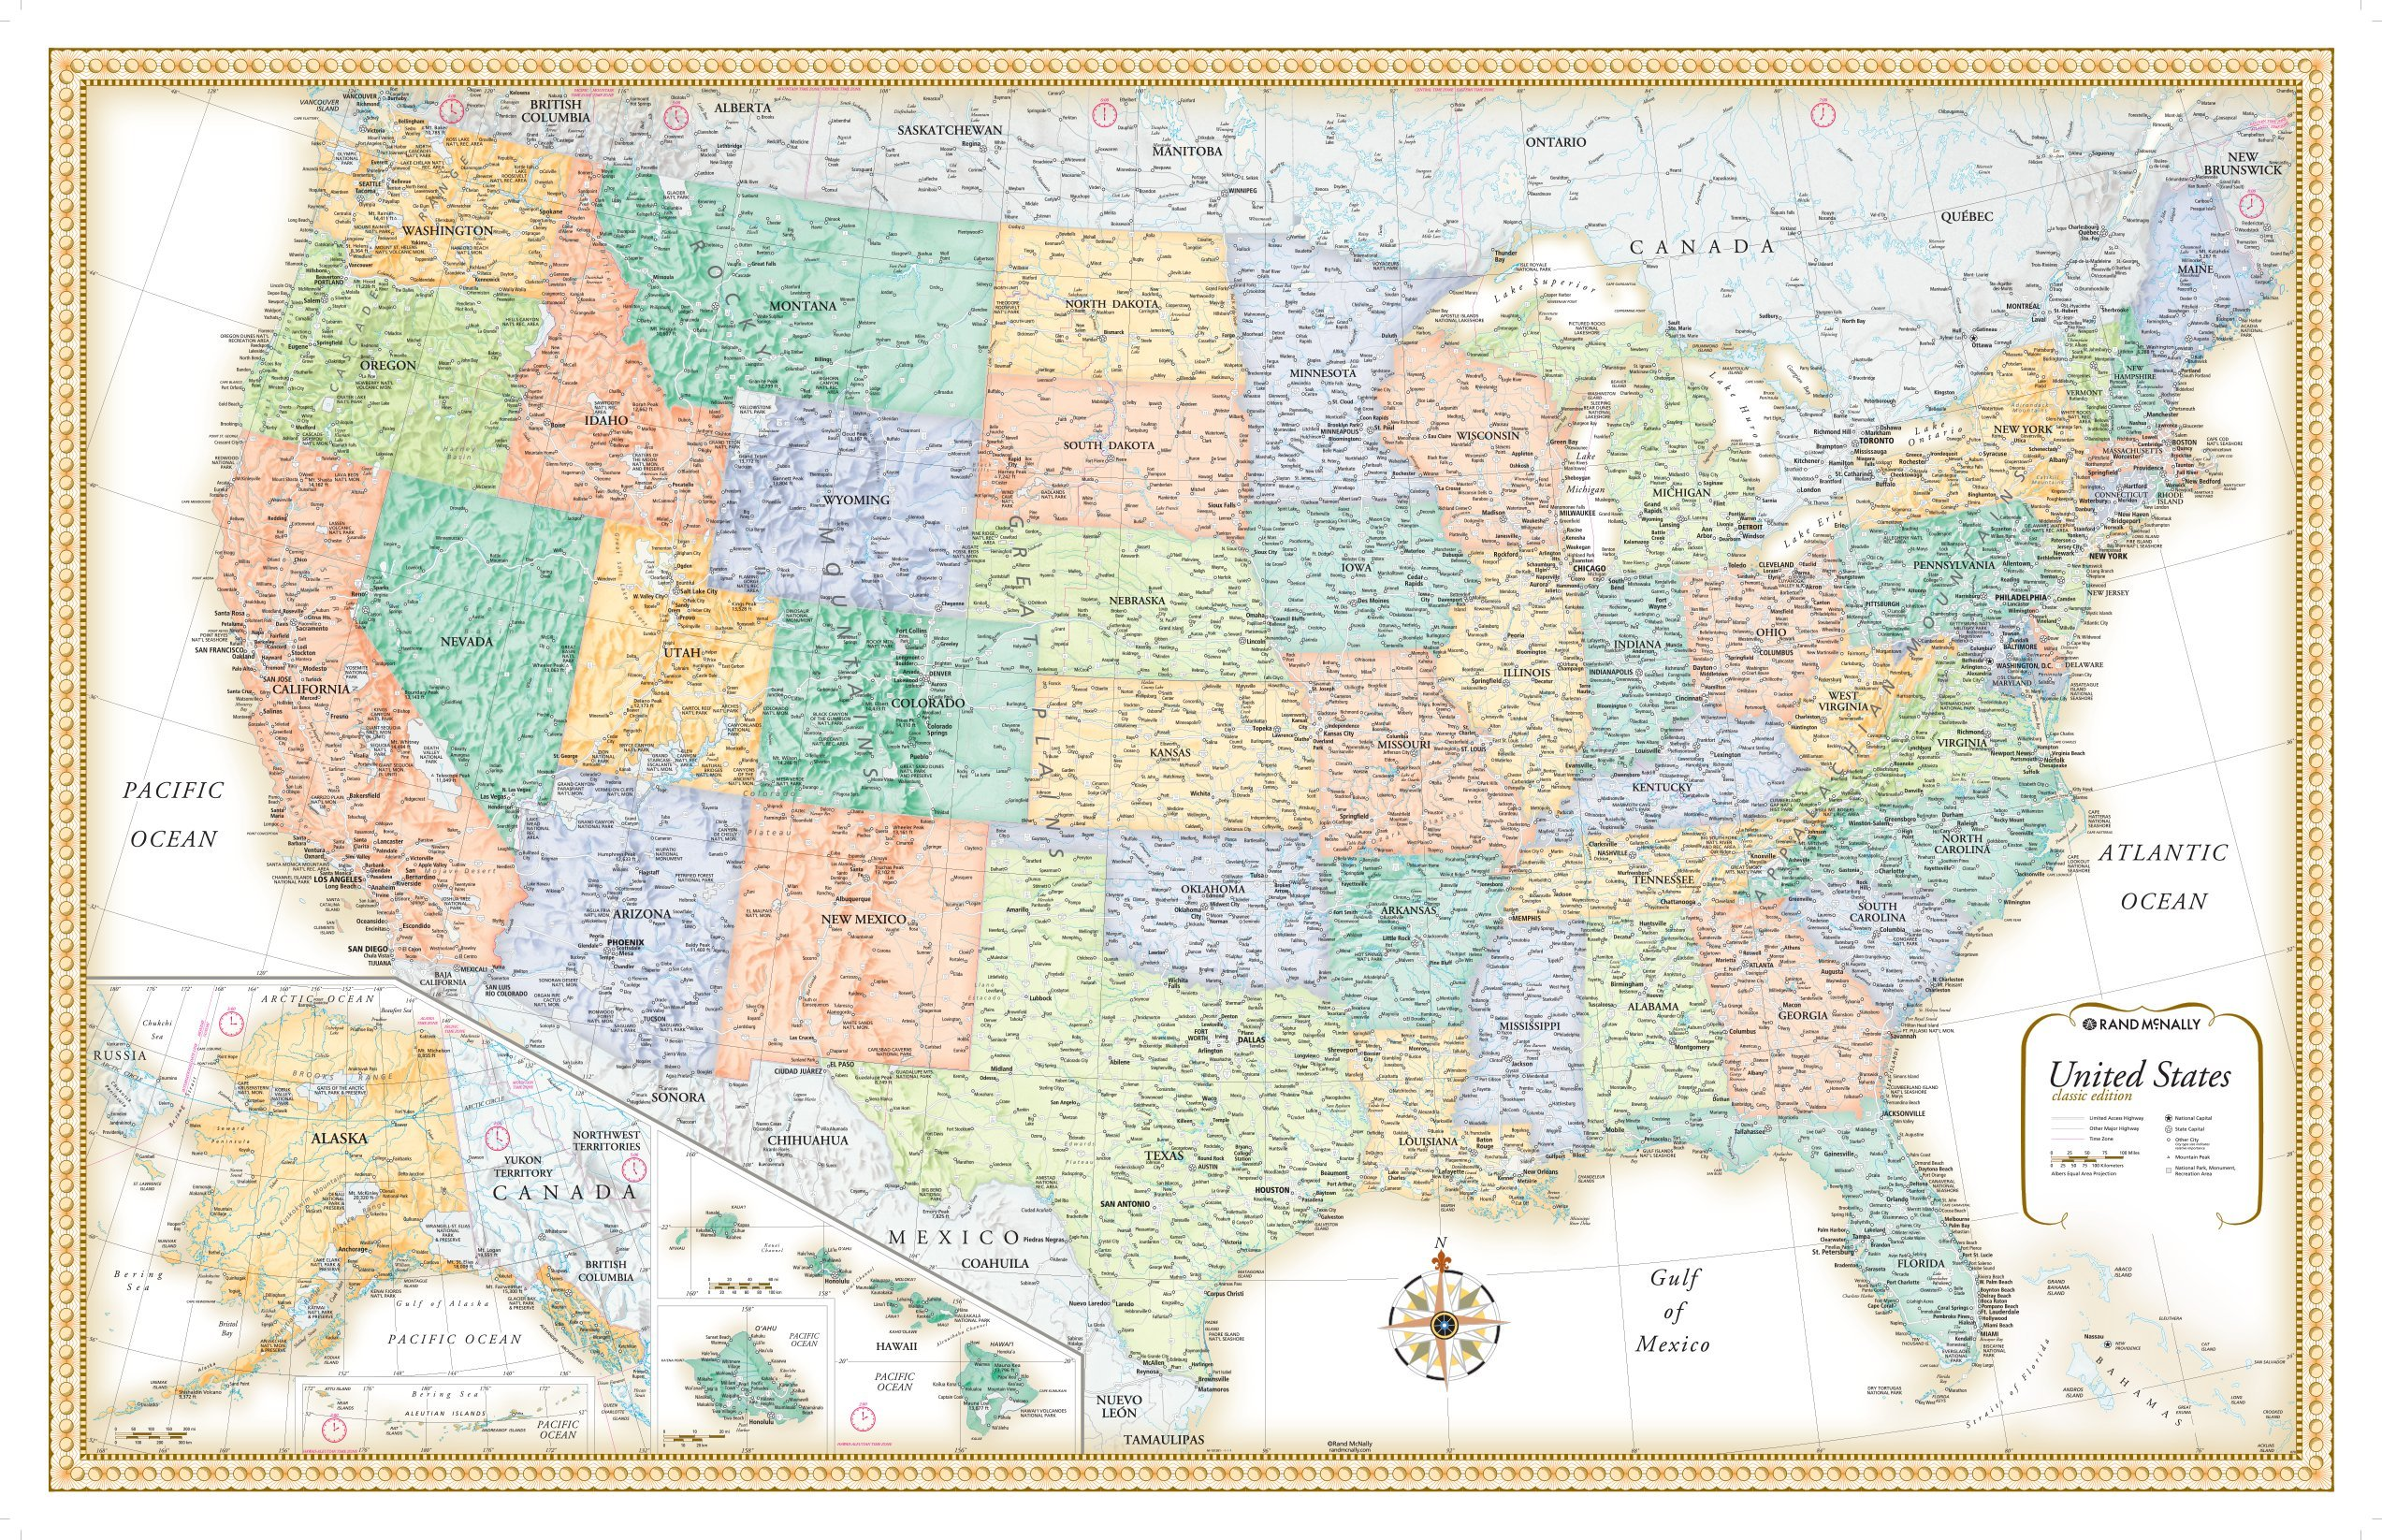 RMC USA CLASSIC SWIFTMAPScom - Rand mcnally us wall map